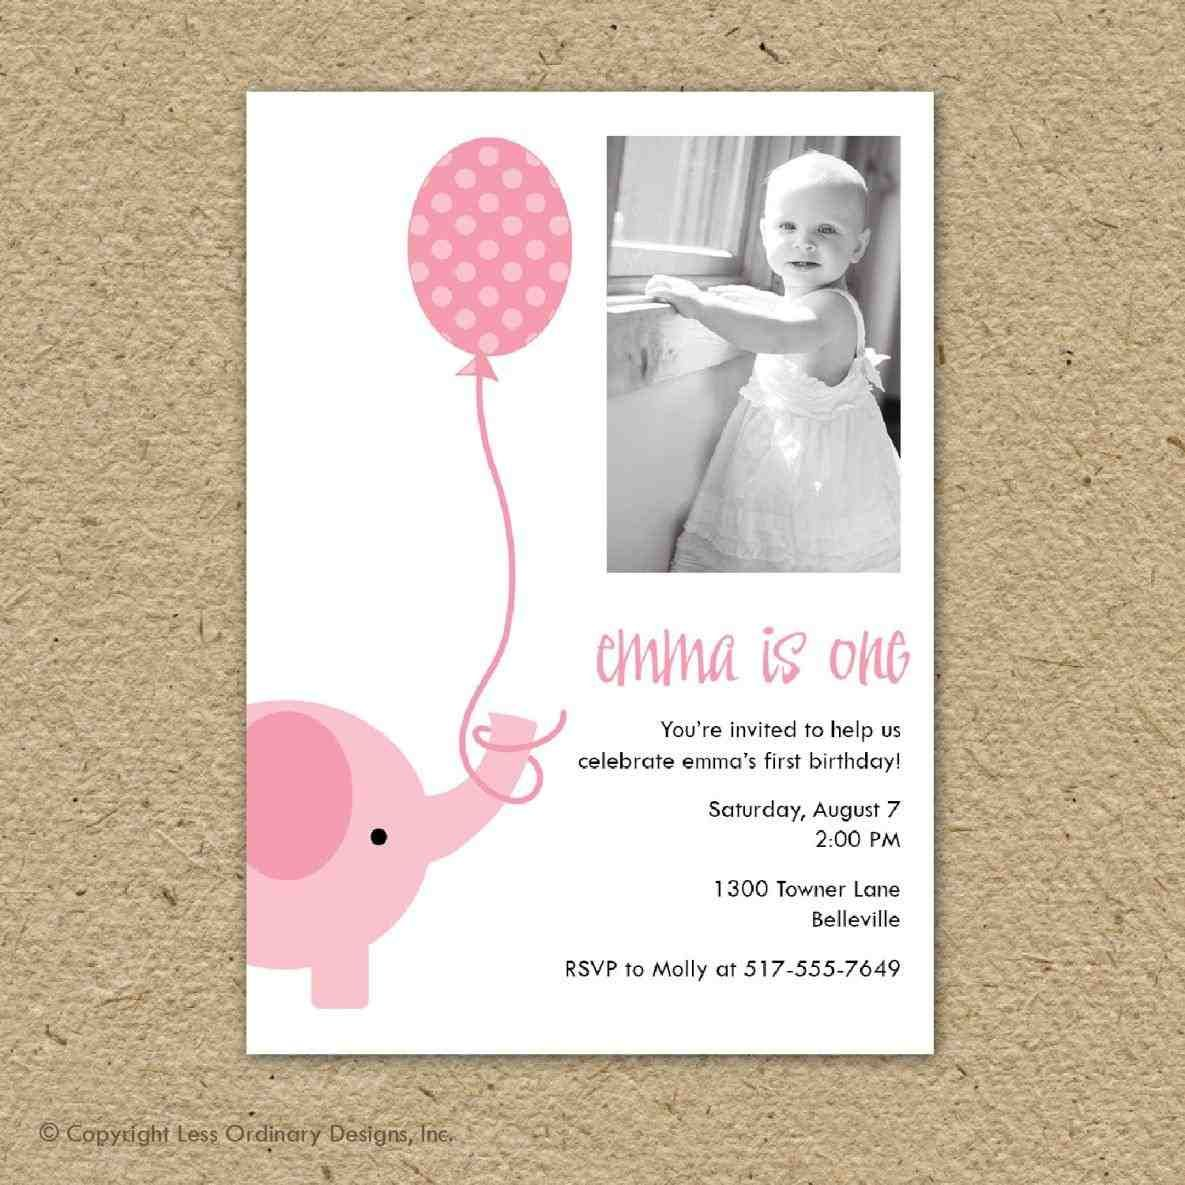 75th birthday invitations printable ; 26c4320febf2ba781deee98d982eb2ec